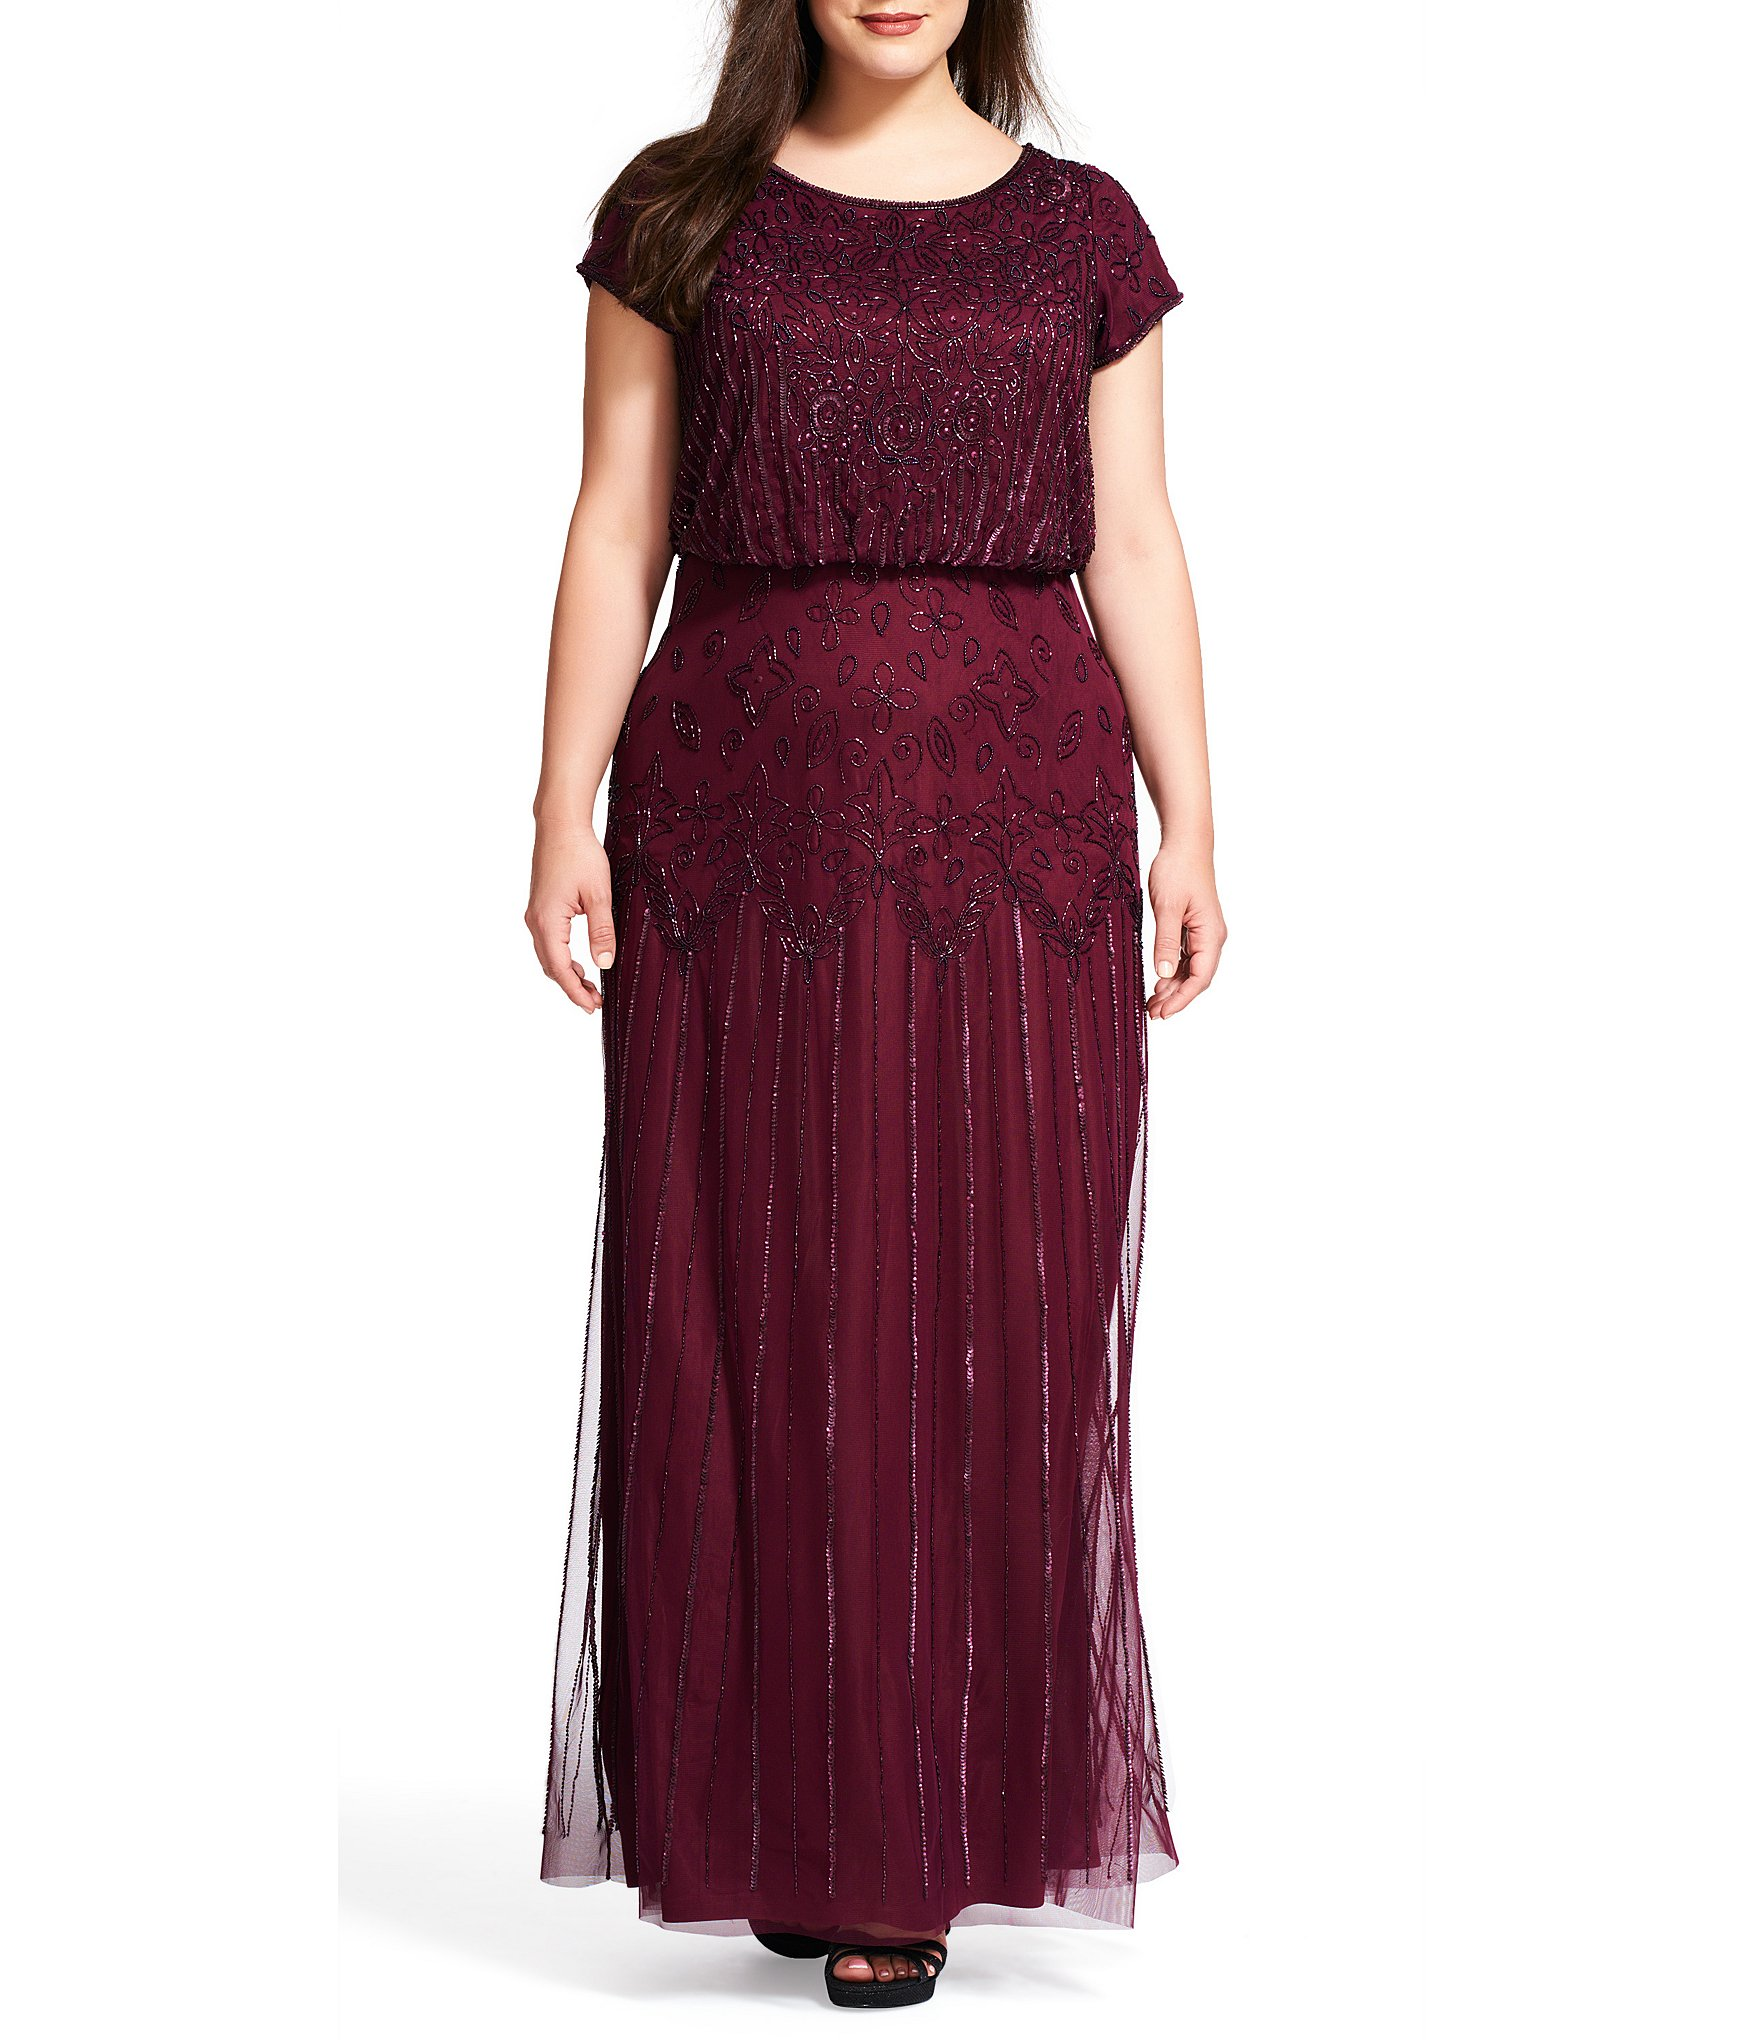 Plus-Size Formal Dresses & Gowns | Dilllards